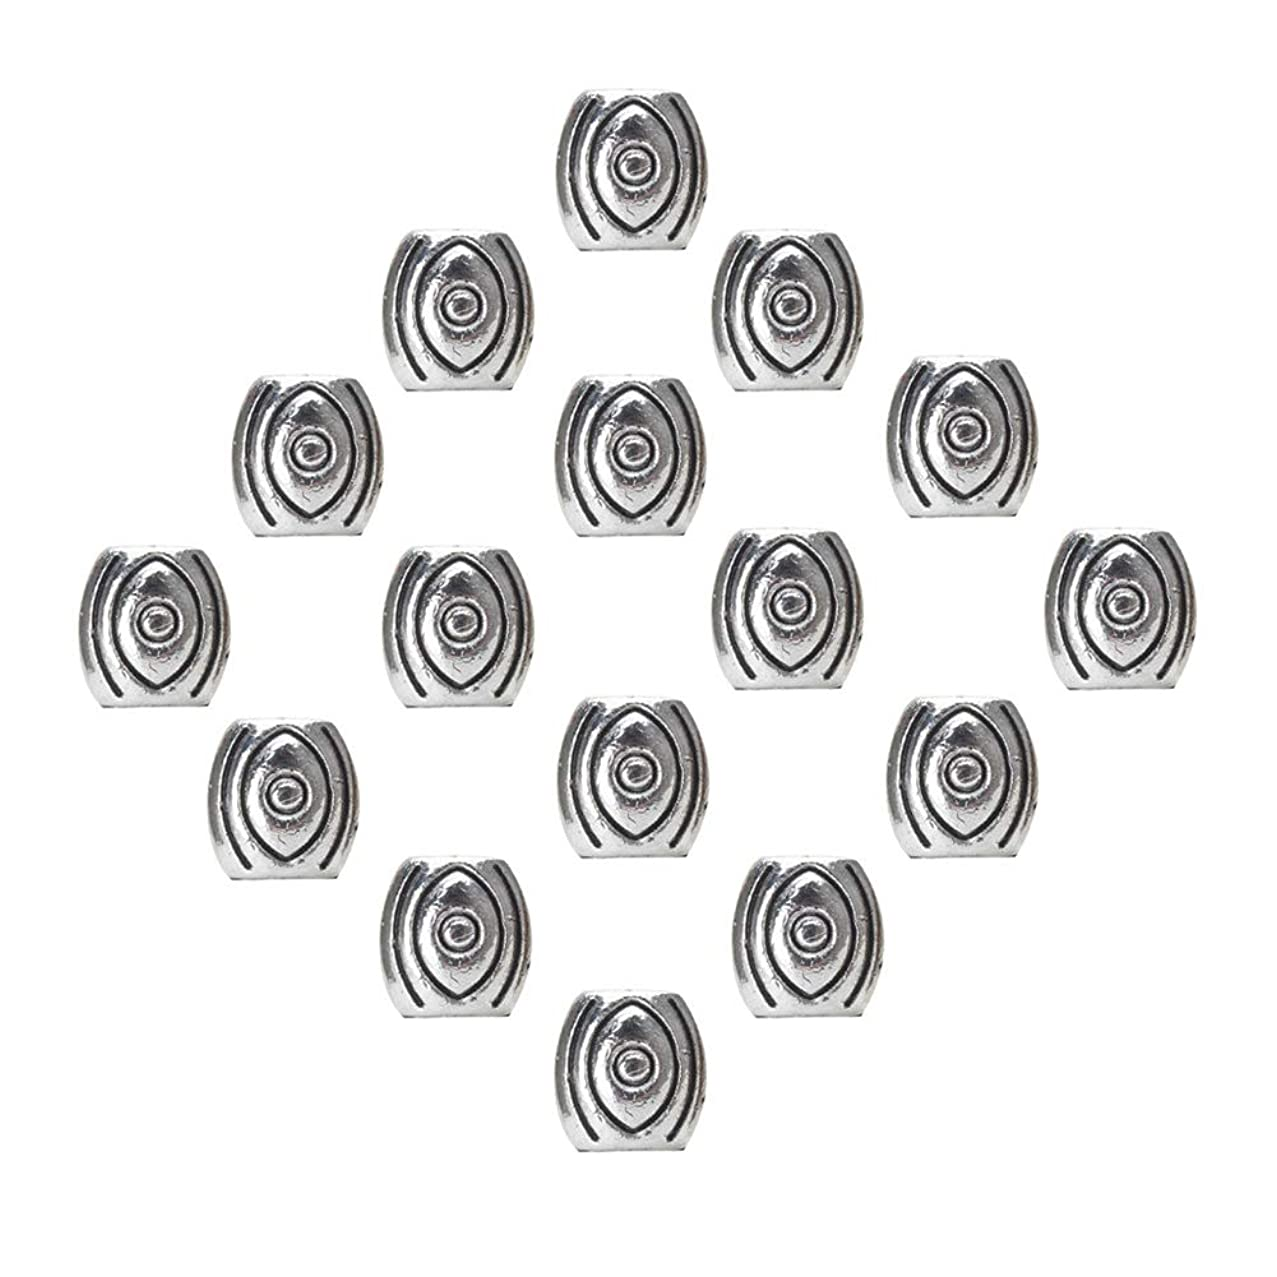 Mystart 60 Pieces Antique Silver Alloy Evil Eye Spacer Beads Necklace Bracelet Loose Beads DIY Accessories